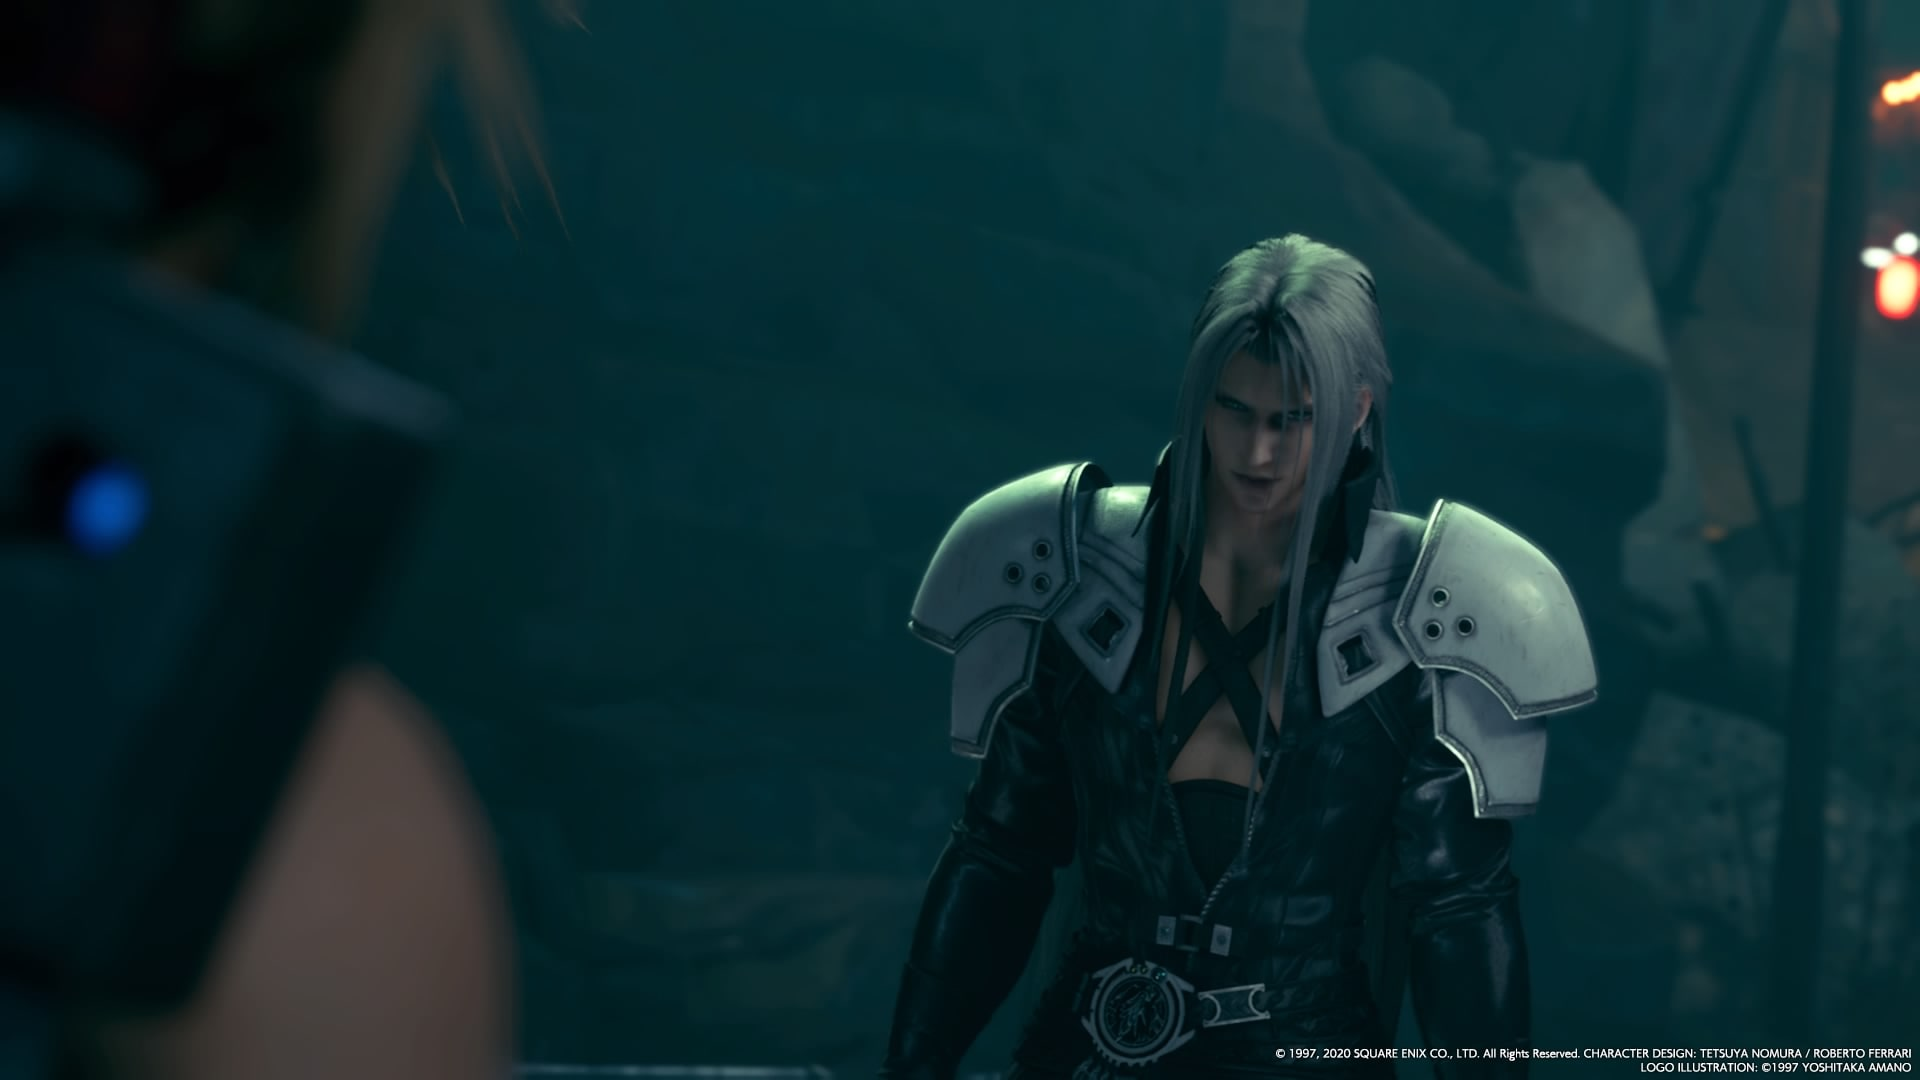 FINAL FANTASY VII REMAKE 20200418190514 min - Final Fantasy VII Remake - Guida alla modalità difficile